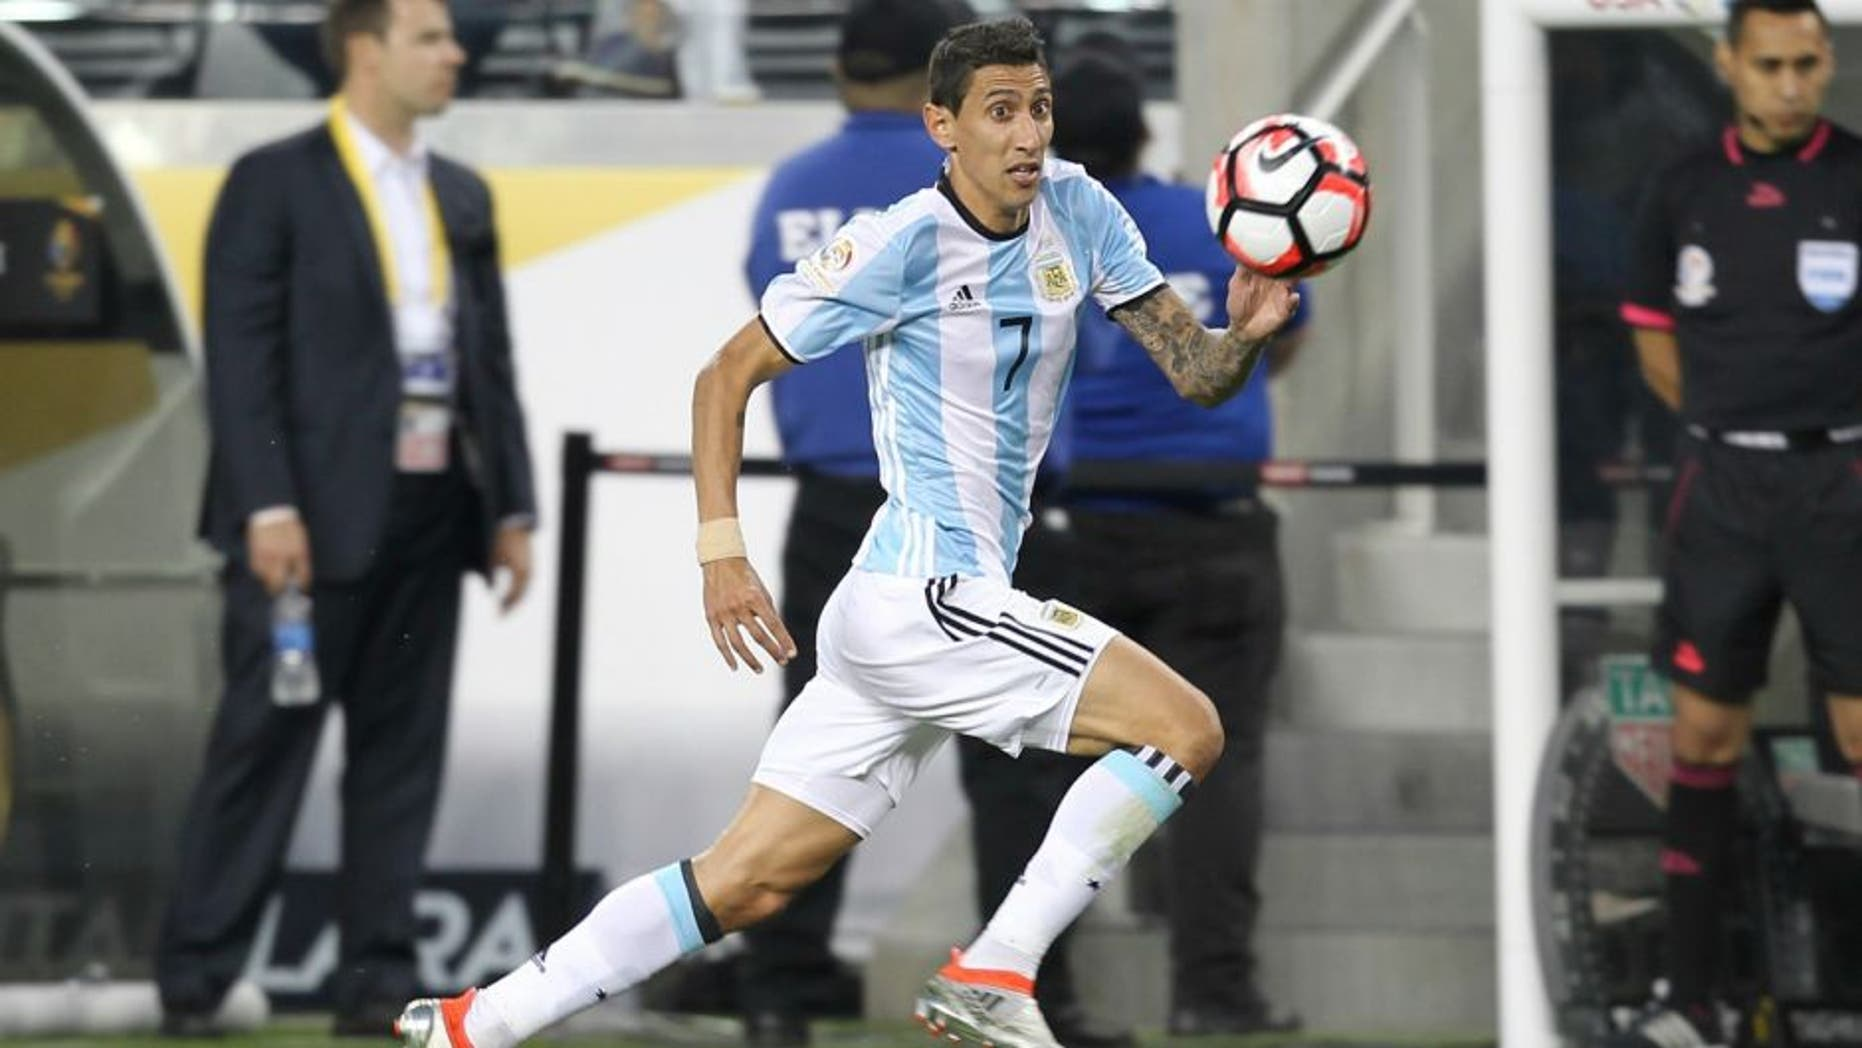 SANTA CLARA, CALIFORNIA - JUNE 06: Angel Di Maria of Argentina drives the ball during a group D match between Argentina and Chile at Levi's Stadium as part of Copa America Centenario US 2016 on June 06, 2016 in Santa Clara, California, US. (Photo by Omar Vega/LatinContent/Getty Images)